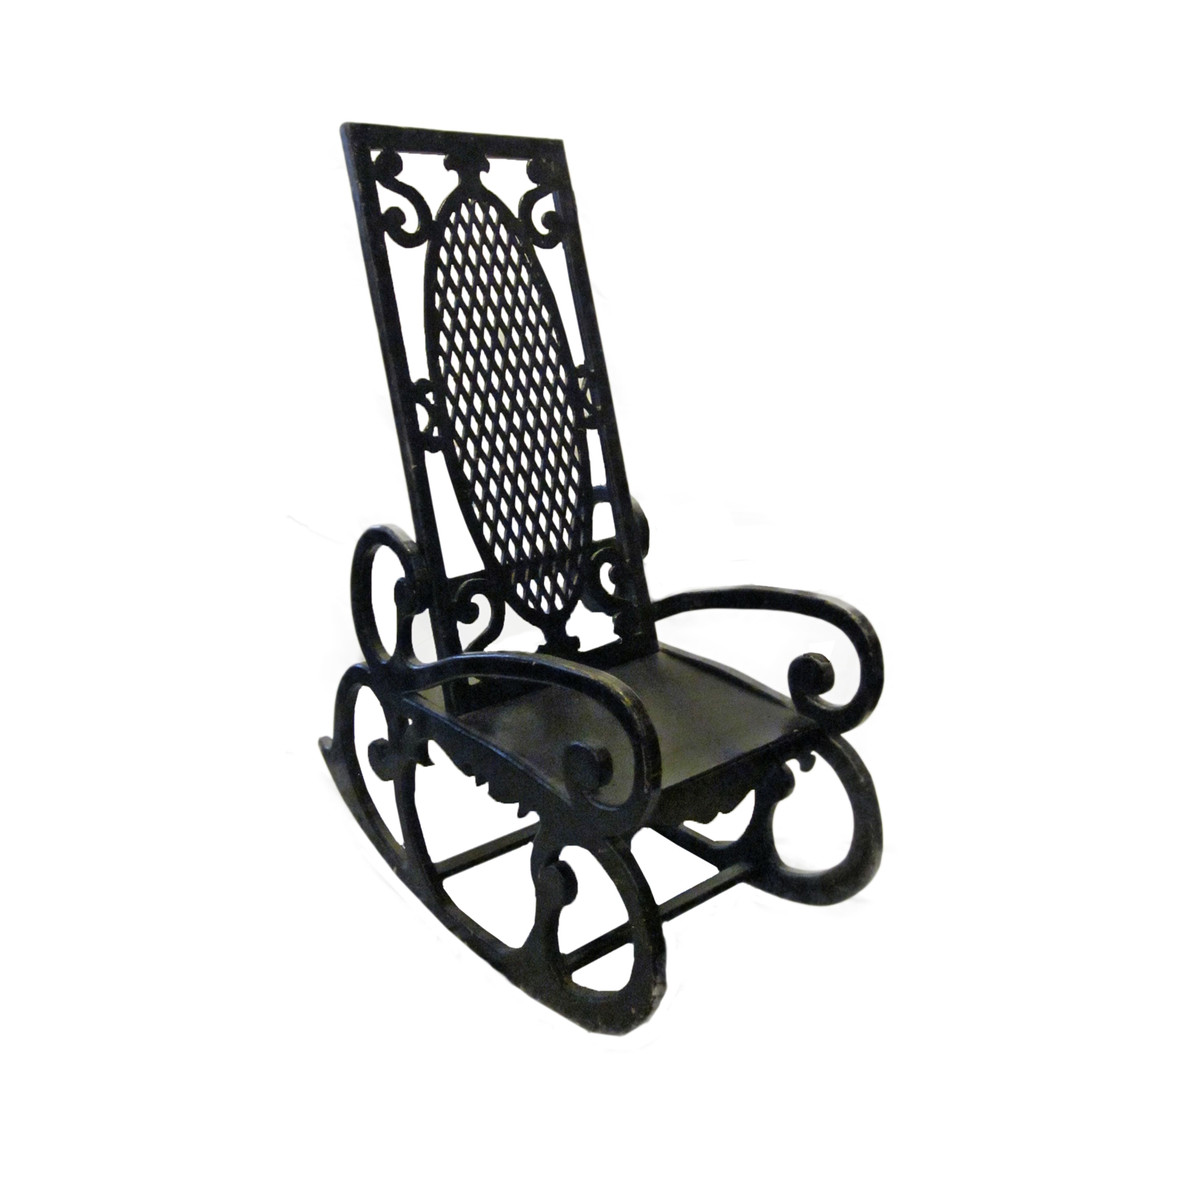 Balsamo Antiques  1920s Oversized Rocking Chair